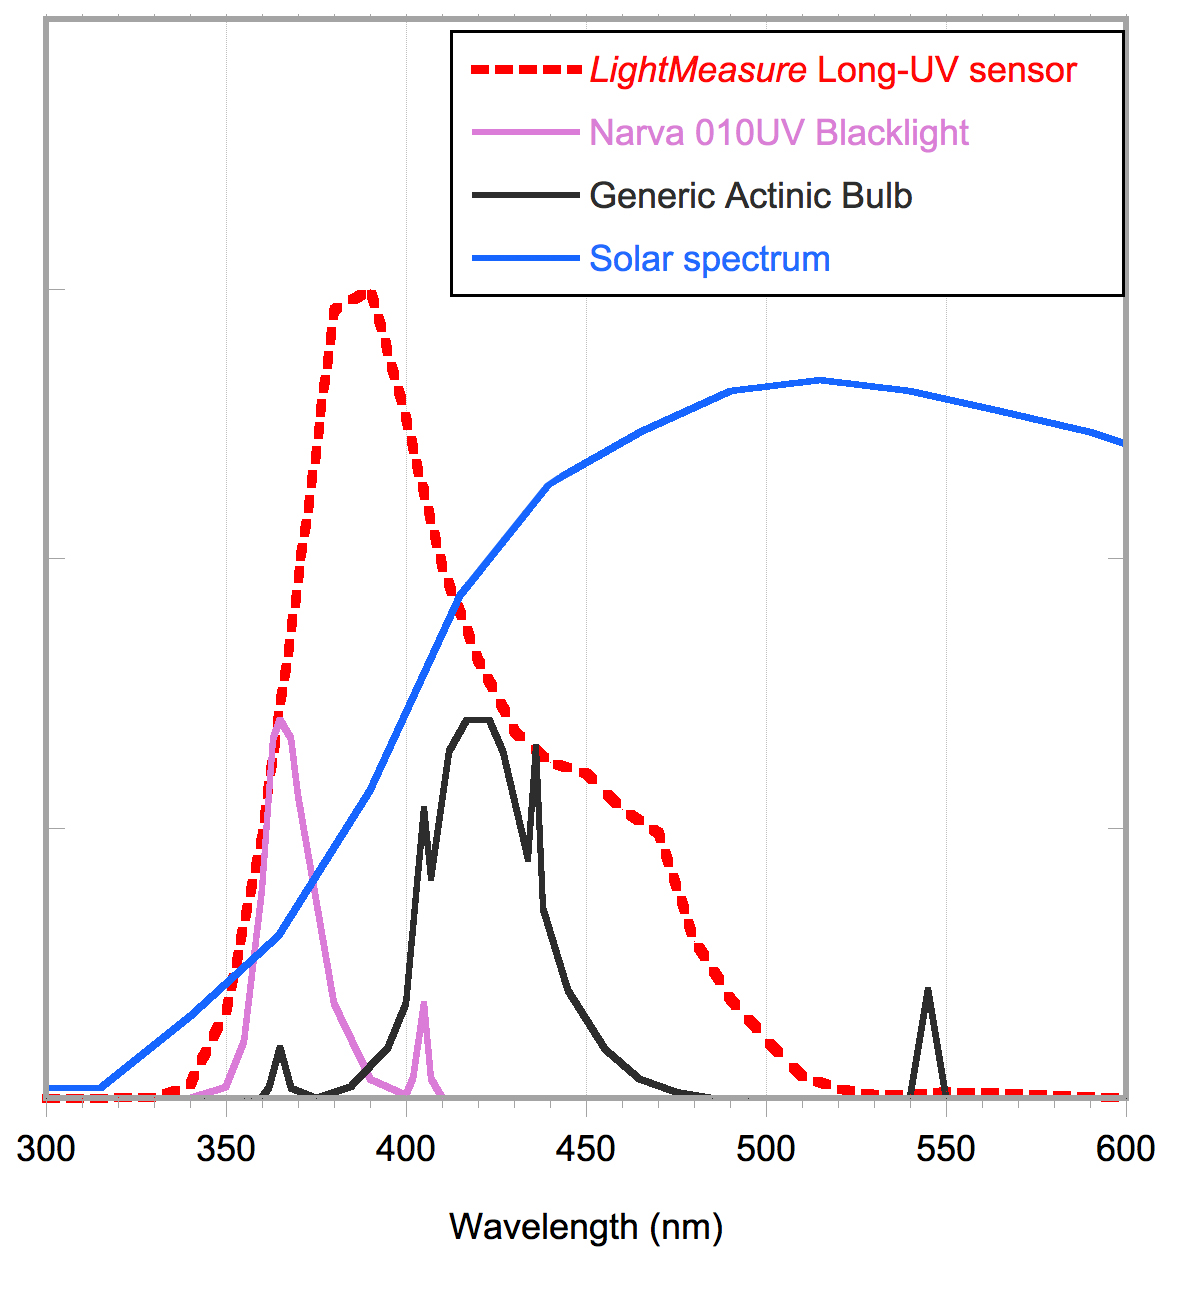 Spectral response of the sensor, and the emission characteristics of a range of suitable light sources.